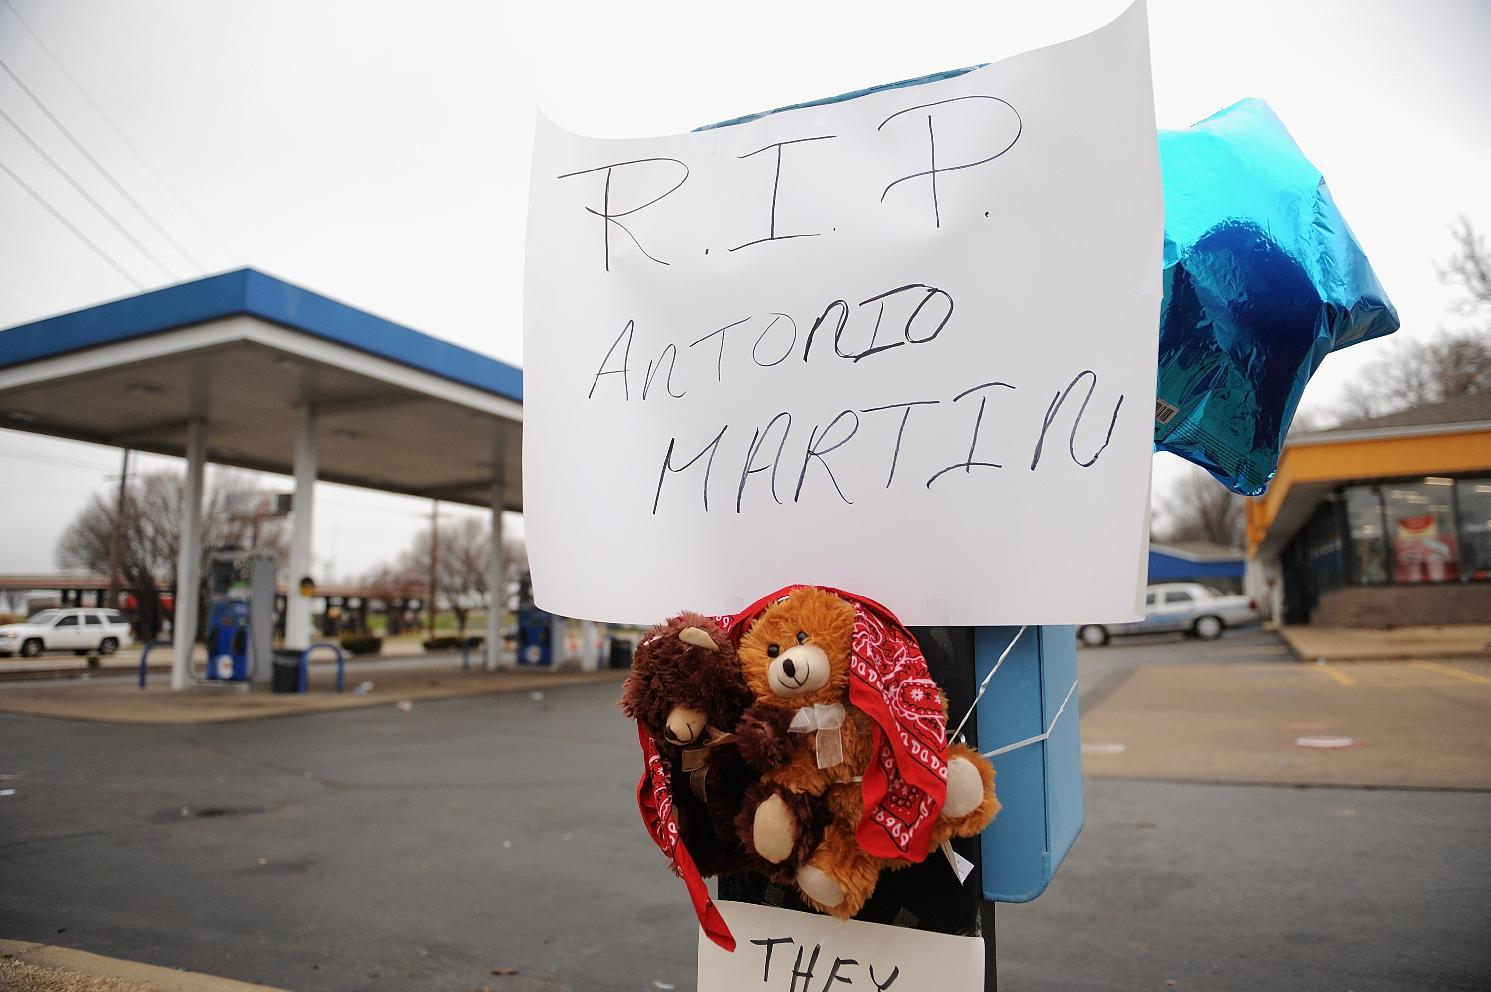 Anger after latest police killing of black teen in US